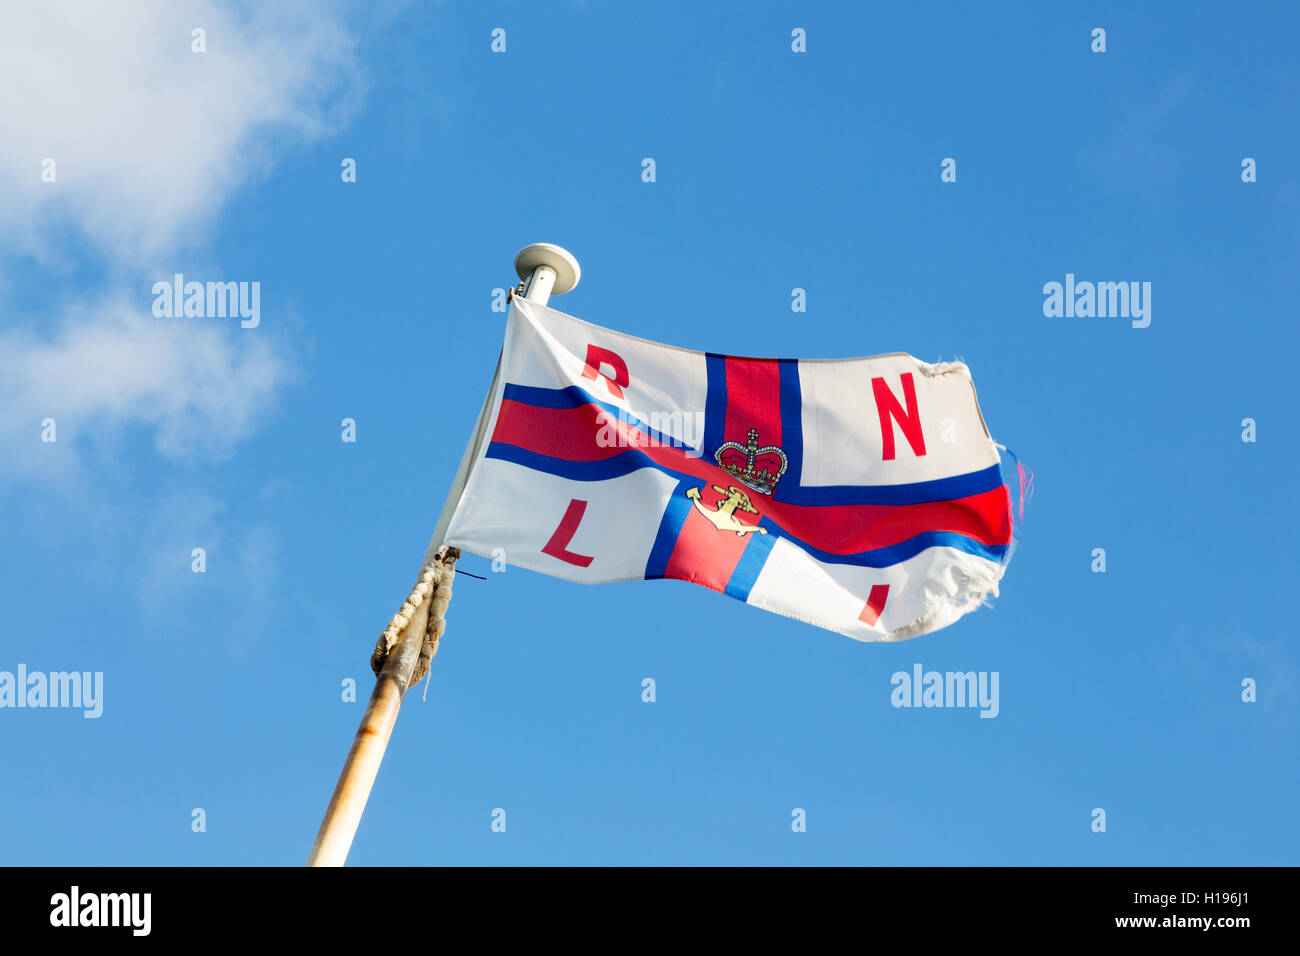 RNLI  ( Royal National Lifeboat Institution ) flag flying on a flagpole against a blue sky,  Norfolk, UK - Stock Image